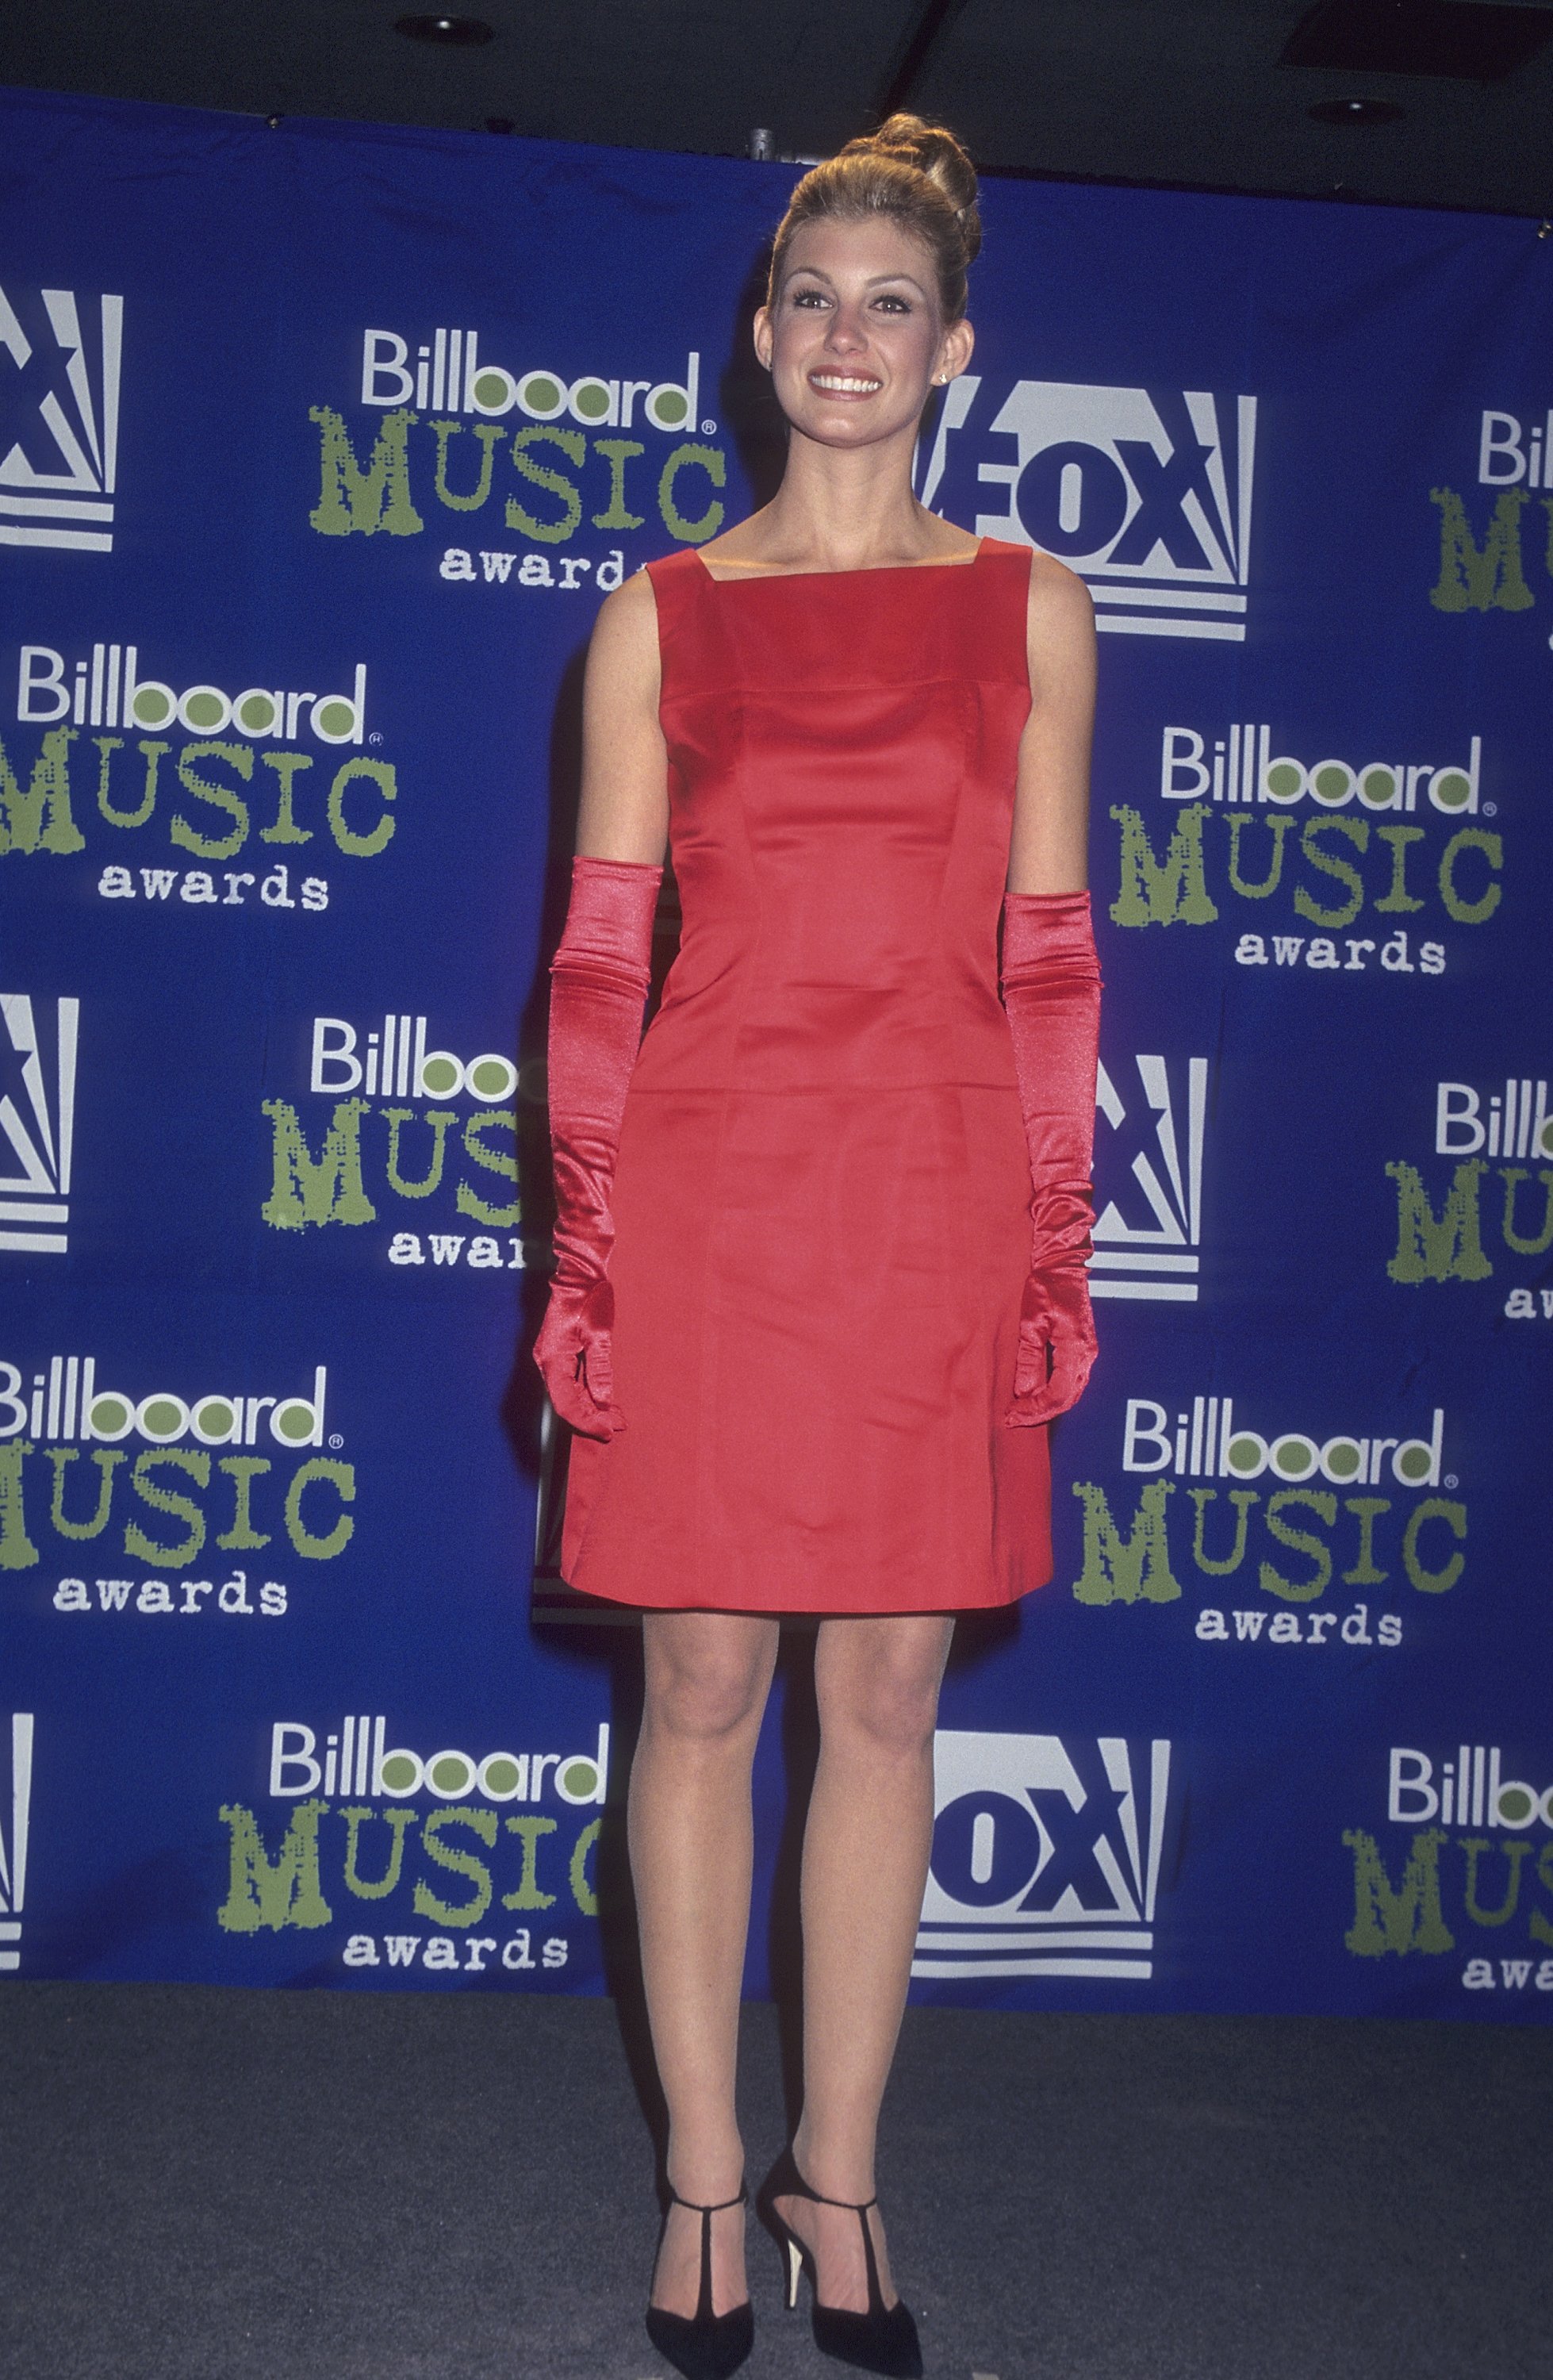 Faith Hill attends the 6th Annual Billboard Music Awards in New York City on Dec. 6, 1995.